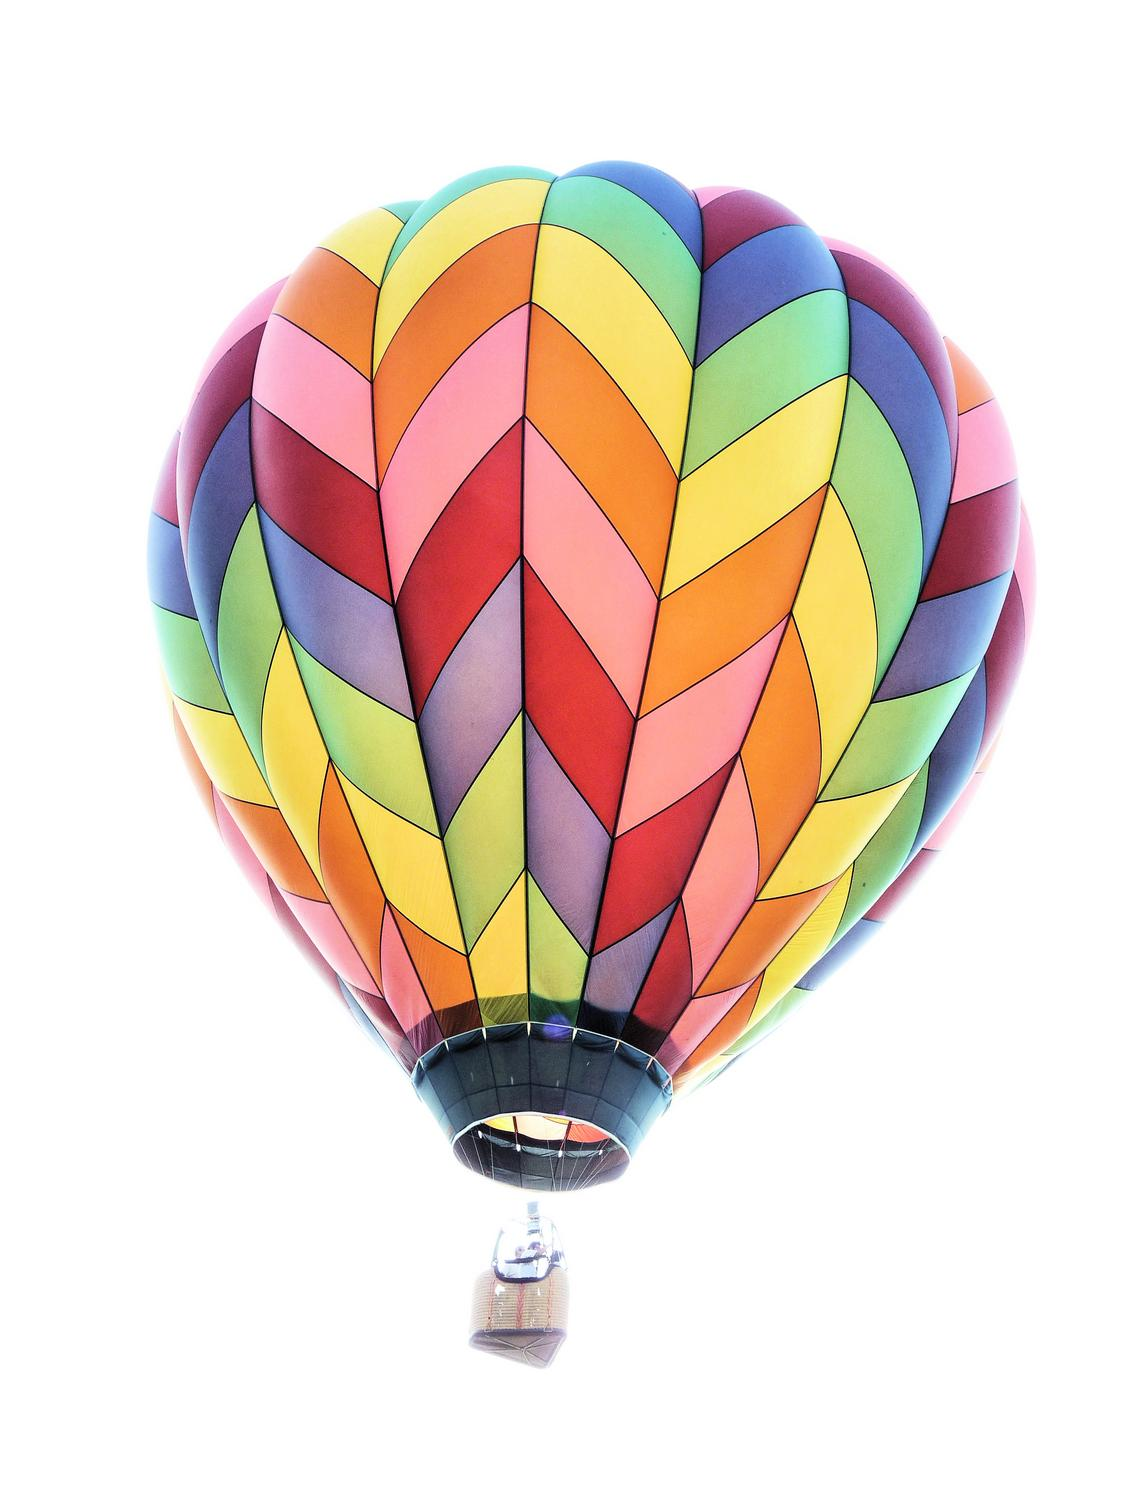 beautiful hot air balloon - Some of the balloons are quite pretty. - Panasonic DMC-FZ28 -- At the Flying Circus - Bealton Virginia - Tony Karp, design, art, photography, techno-impressionist, techno-impressionism, aerial photography , drone , drones , dji , mavic pro , video , 3D printing - Books -